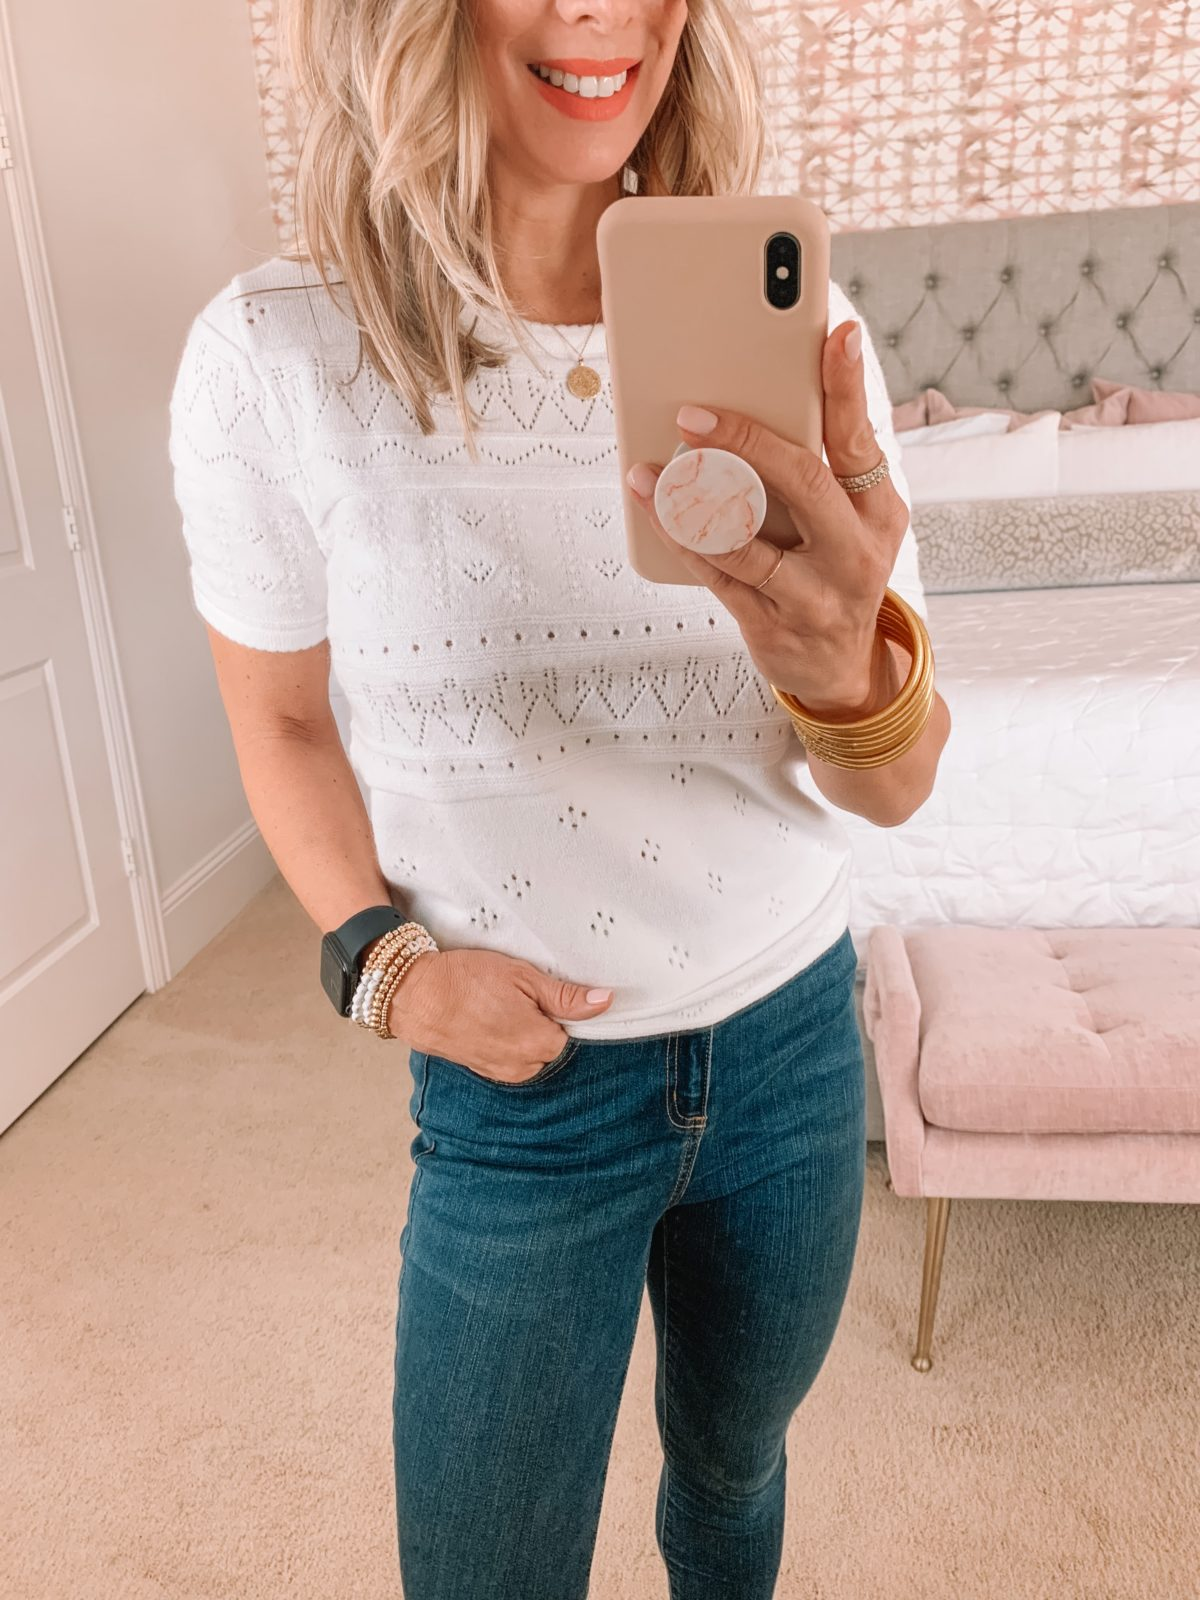 Amazon Fashion Faves, White Embroidered Top, Jeans, Wedge Sandals